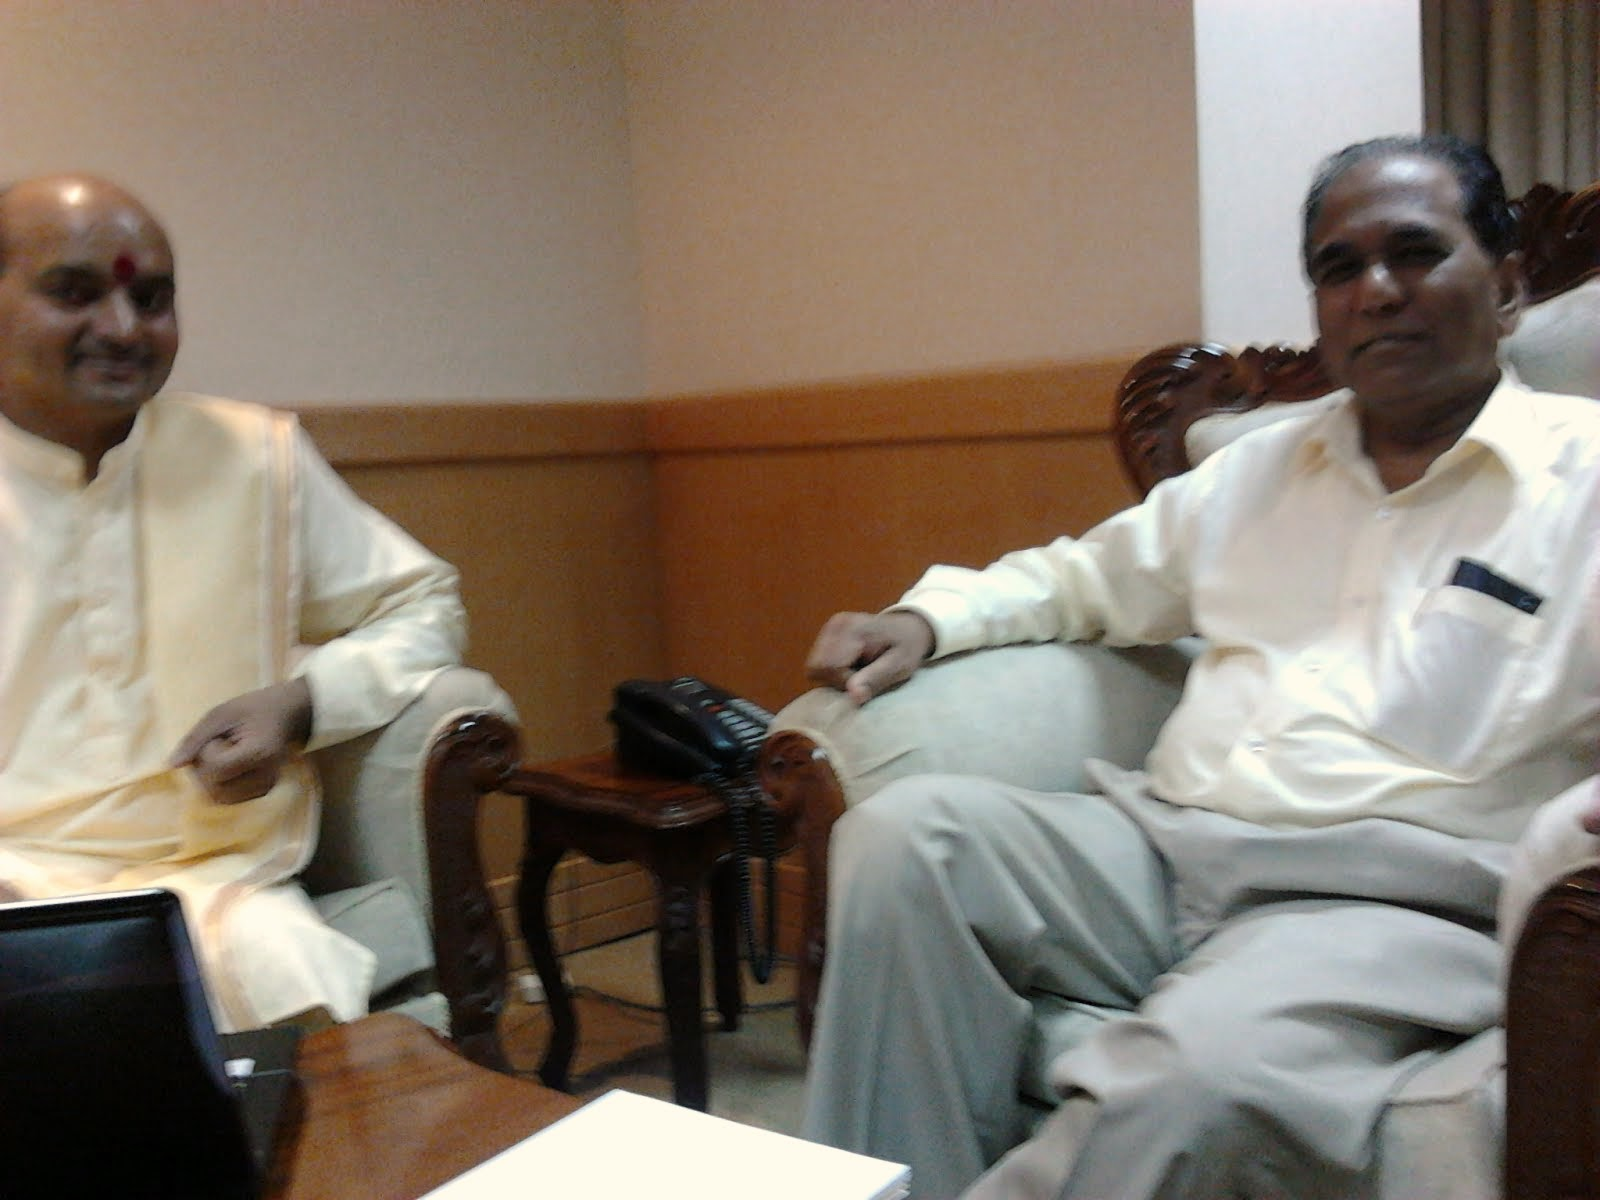 Meeting with The Hon Anil Kumar BACHOO, GOSK, Minister of Public Infrastructure in Mauritius